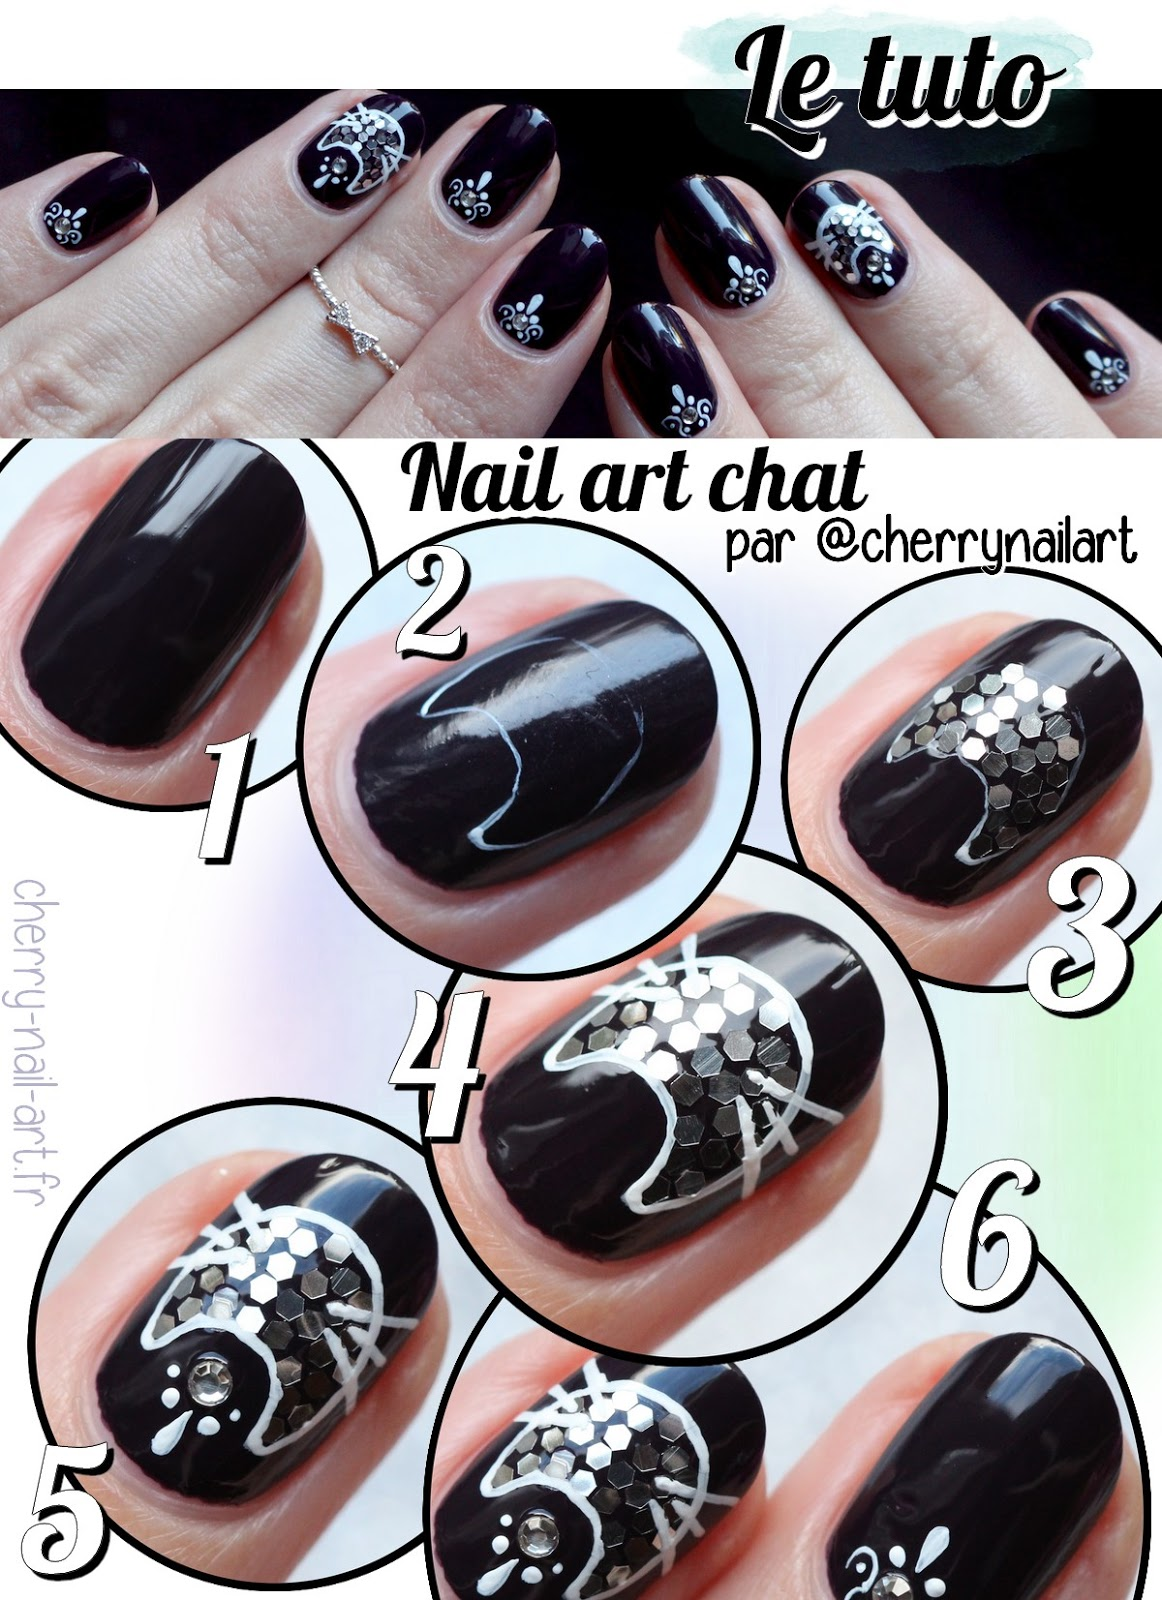 tuto-nail-art-chat-paillettes-facile